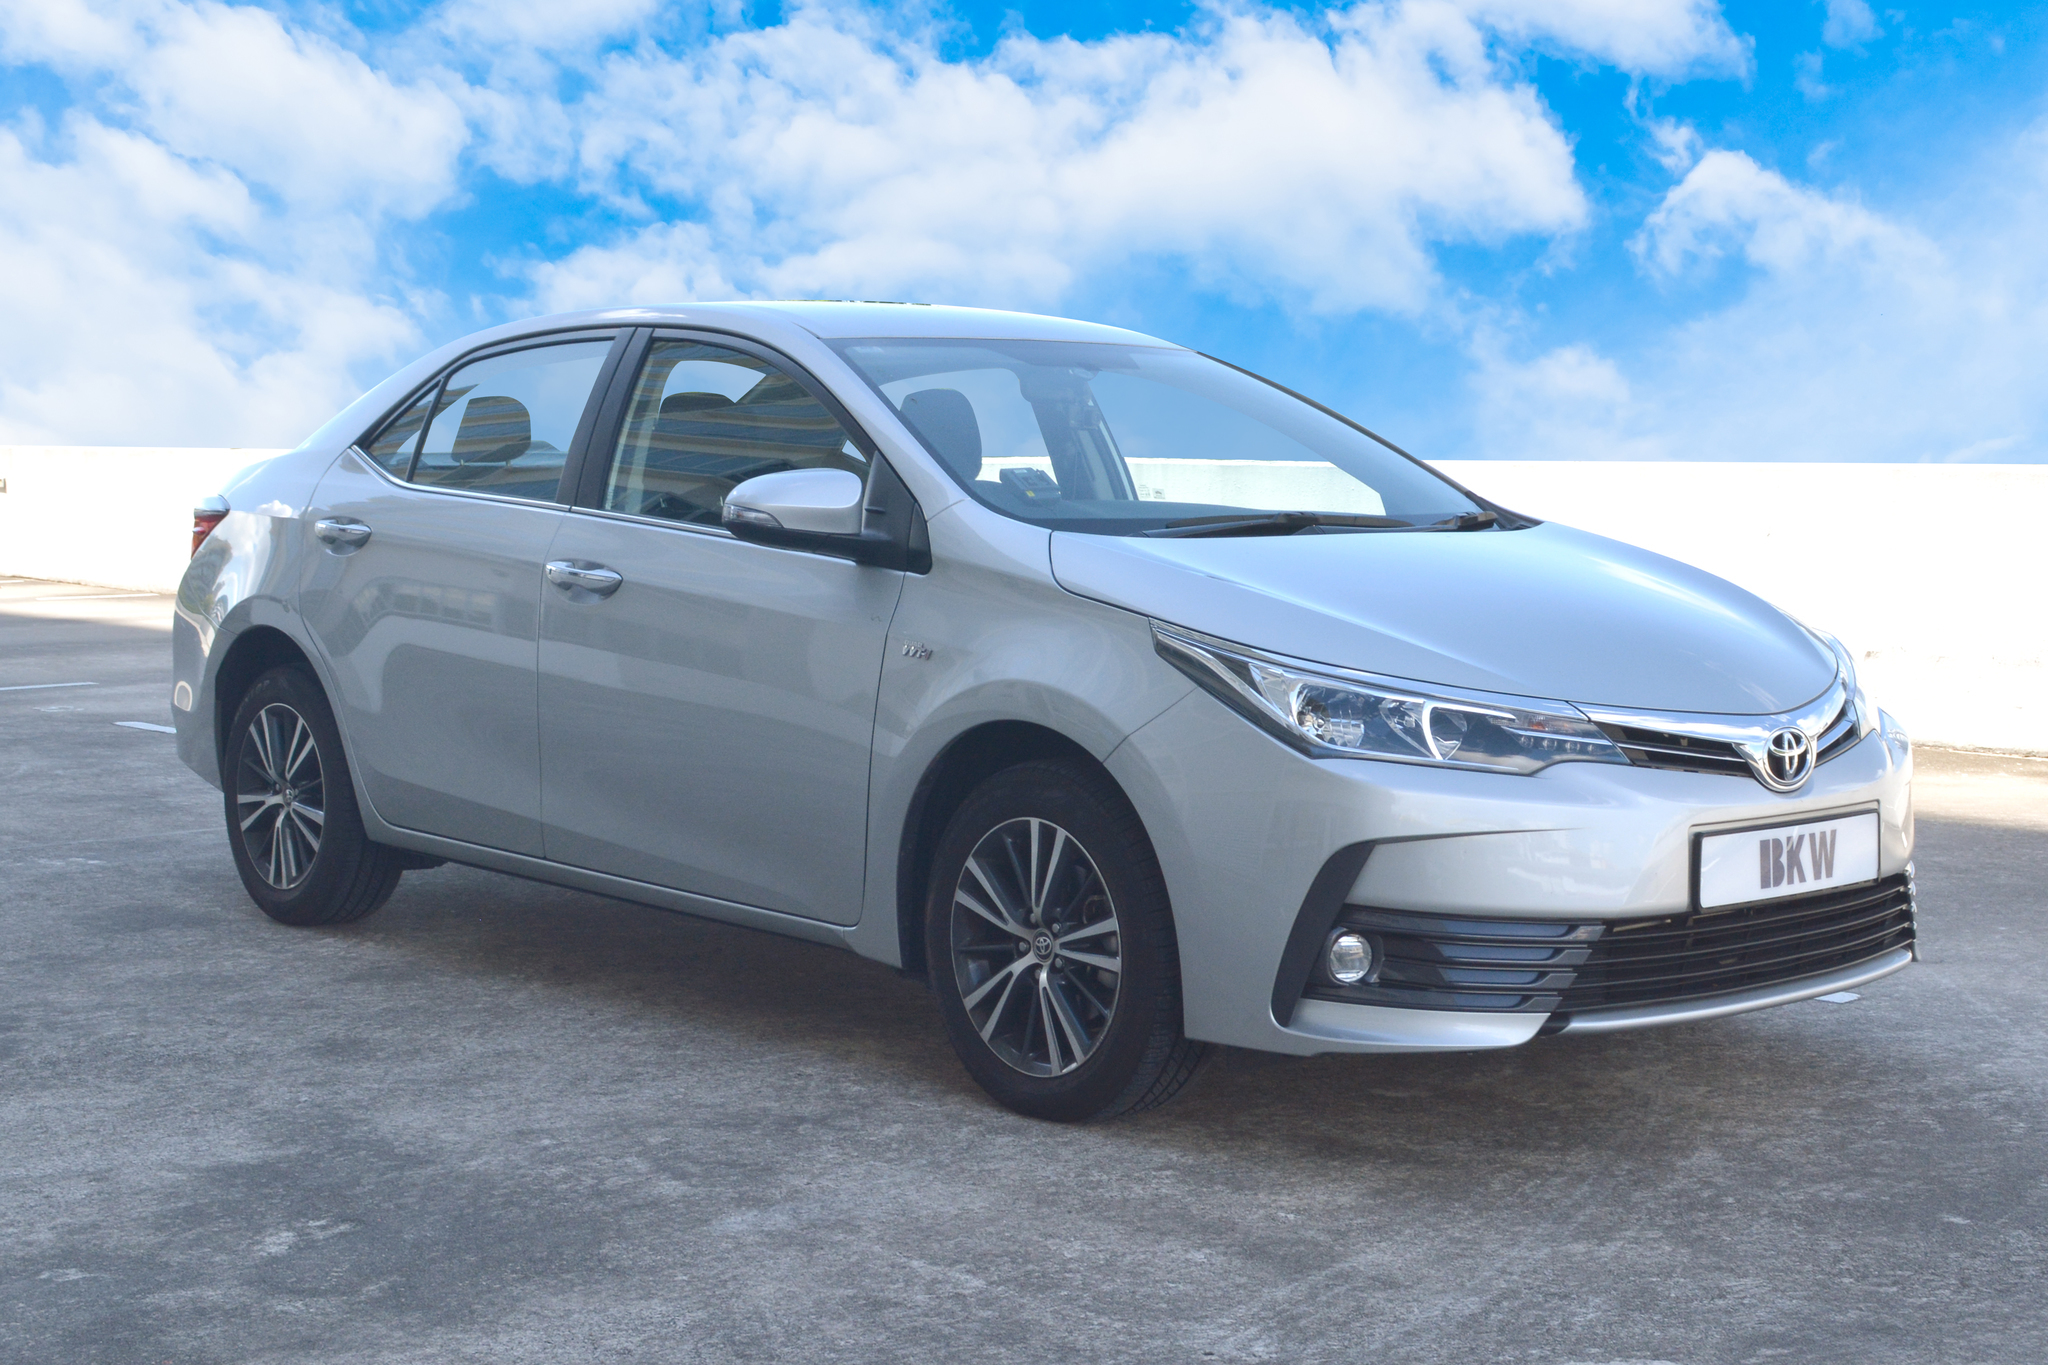 Toyota Corolla Altis 1.6A 2019 - BKW Rent A Car